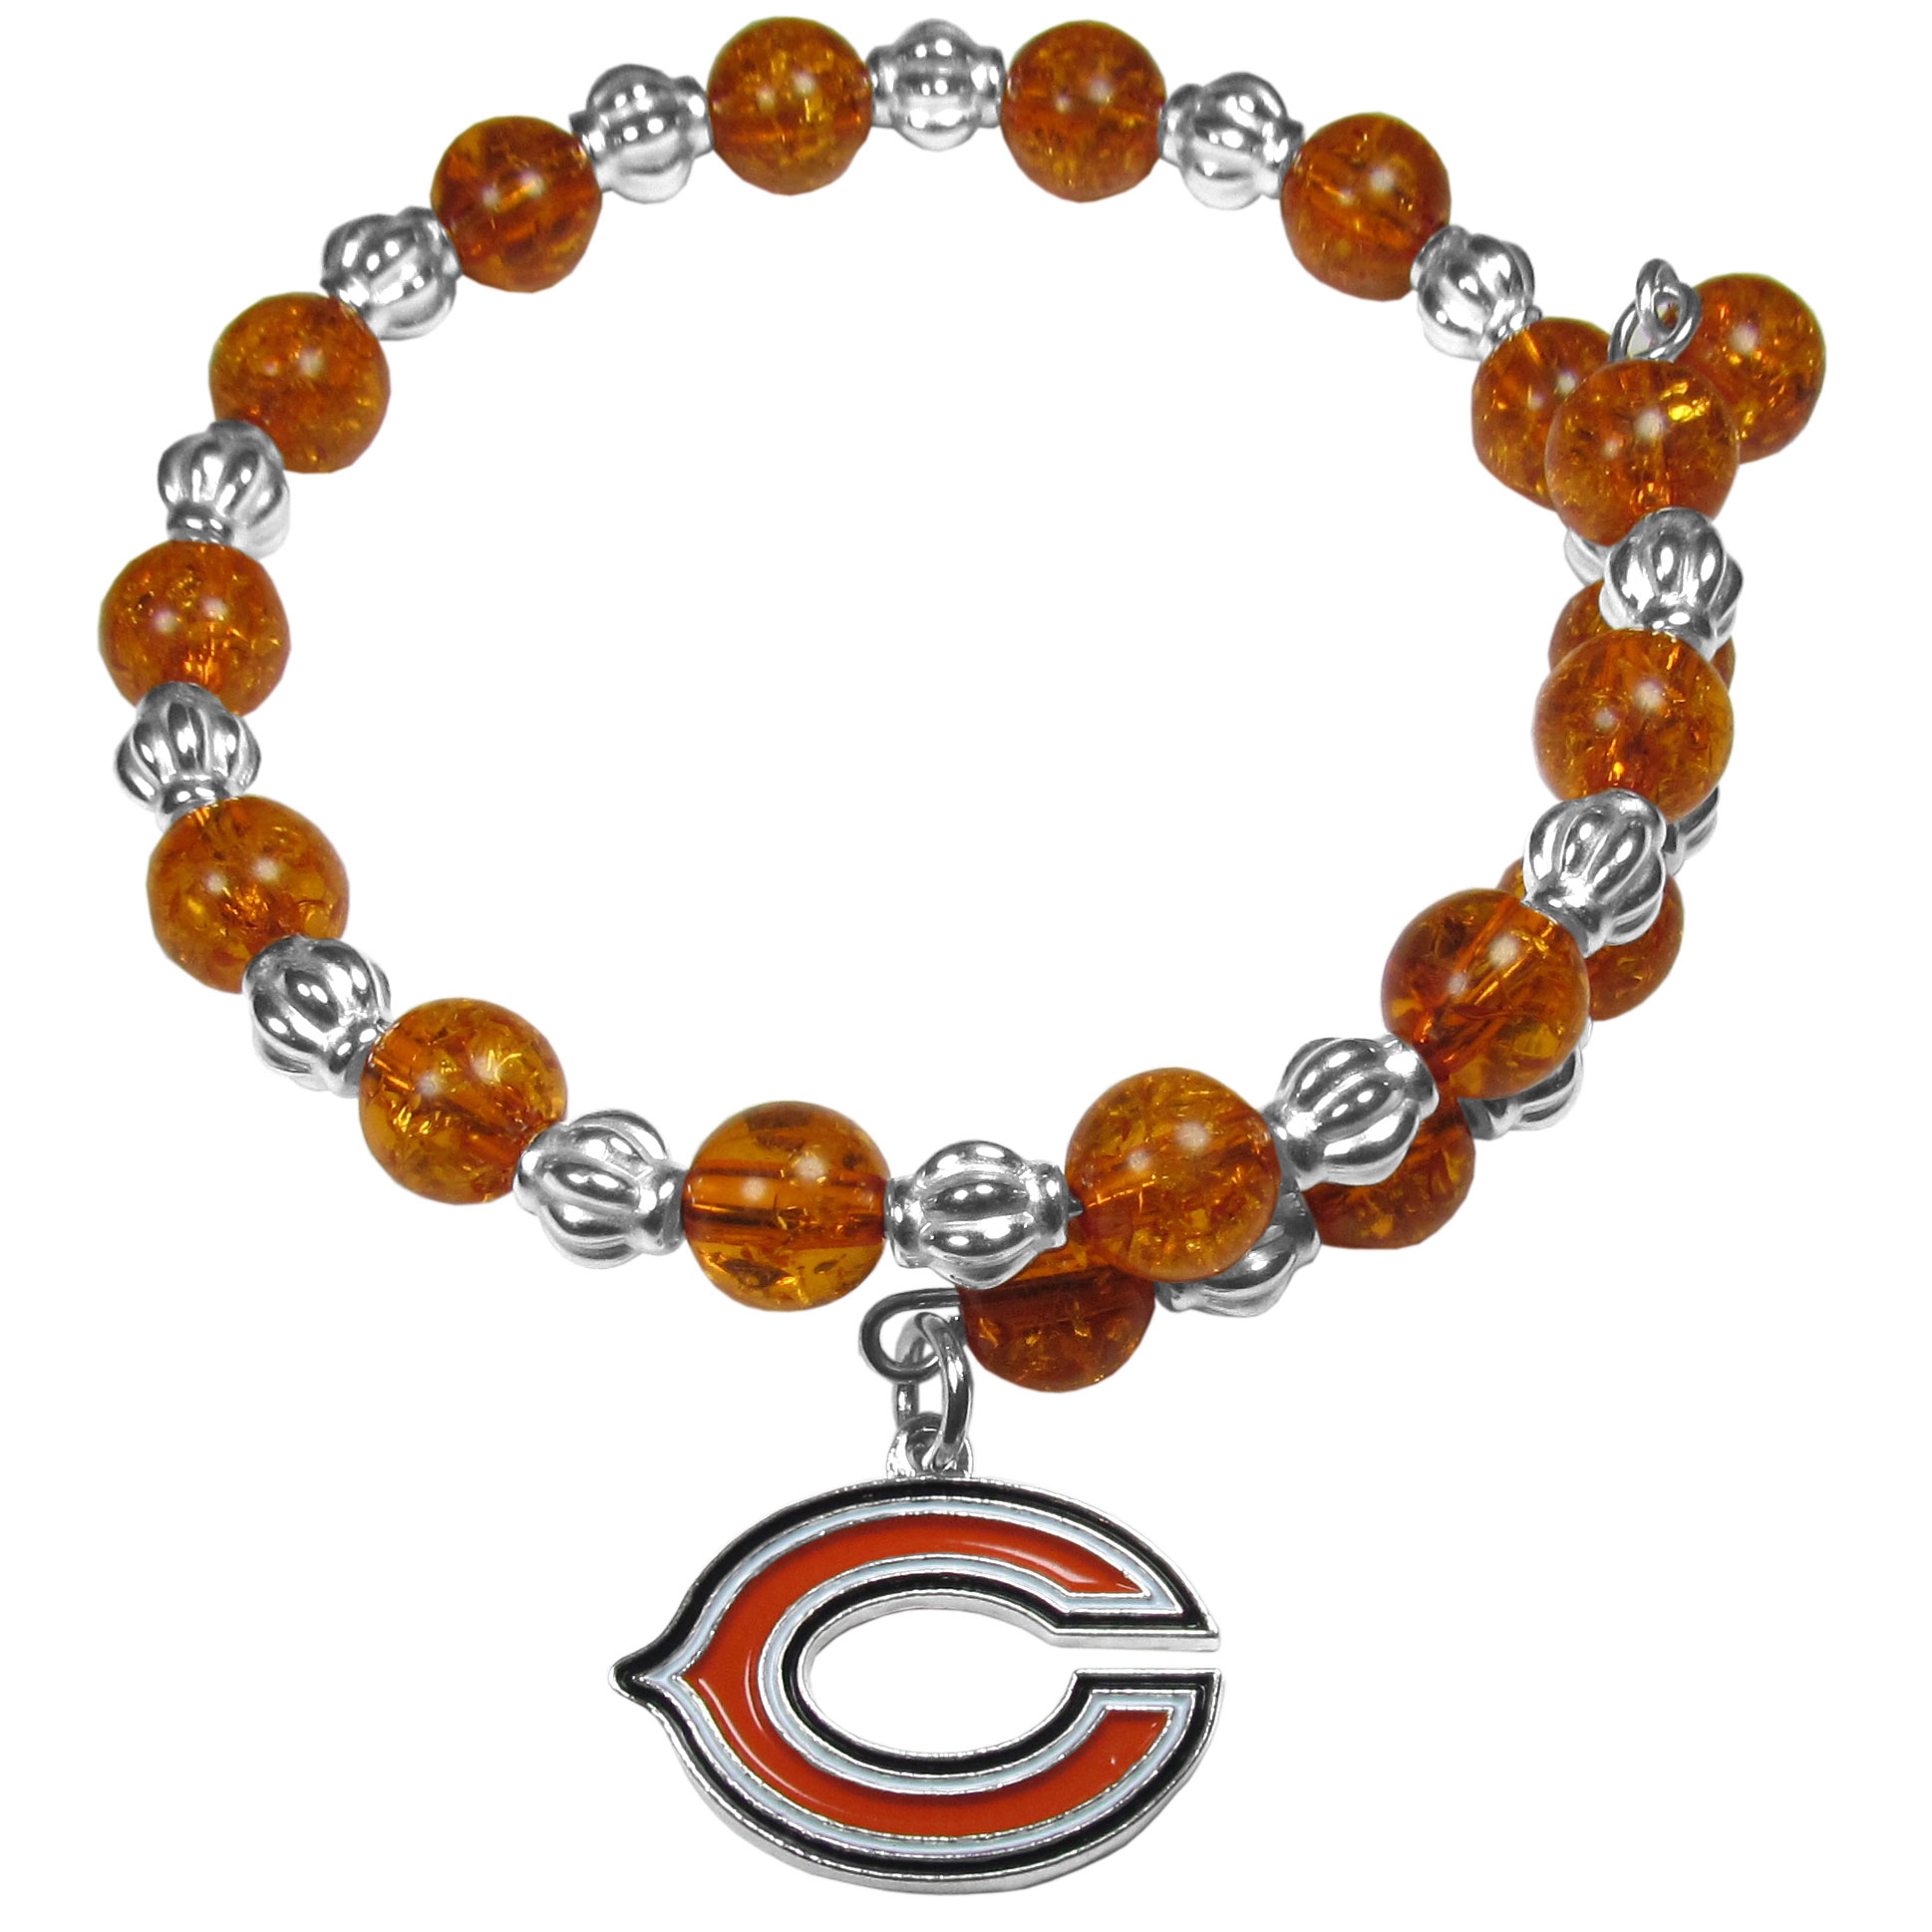 Chicago Bears Bead Memory Wire Bracelet - Our Chicago Bears memory wire bead bracelet is trendy way to show off your love of the game. The double wrap bracelet is completely covered in 7.5 mm crystals that are broken up with silvertoned beads creating a designer look with a sporty twist. The bracelet features a fully cast, metal team charm that has expertly enameled team colors. This fashion jewelry piece is a must-have for the die-hard fan that chic look that can dress up any outfit.